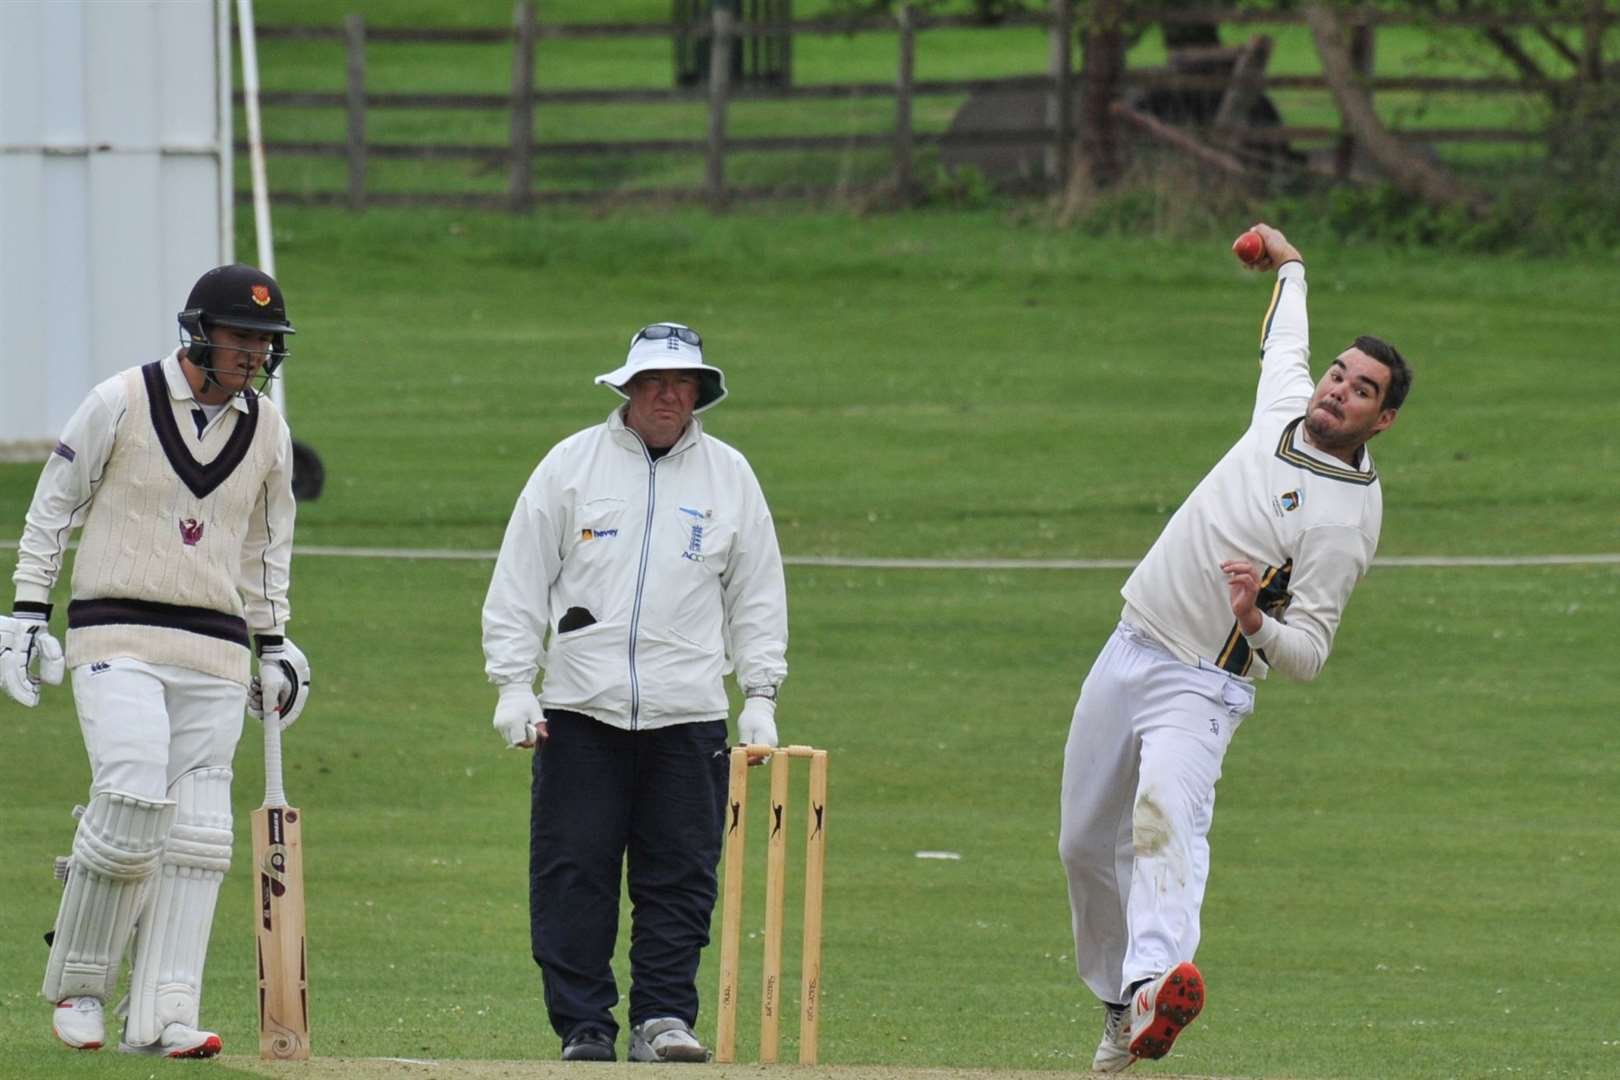 Action from Burghley Park's victory over Uppingham in Division Two. Photo: Alan Walters (9406764)